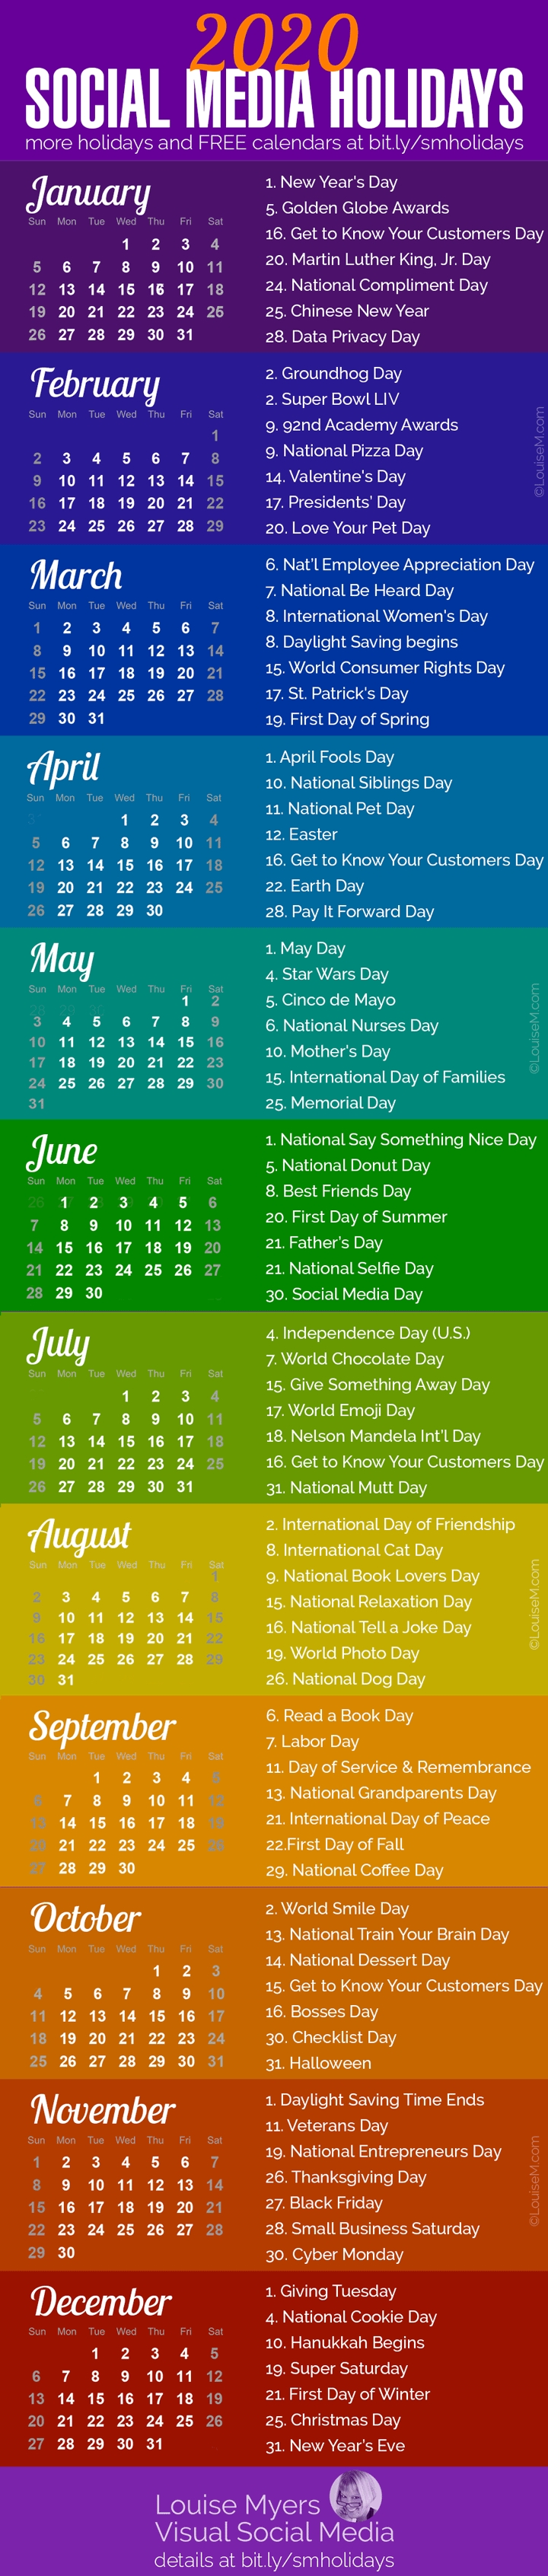 84 Social Media Holidays You Need In 2020: Indispensable! within Special Days In 2020 Calendar